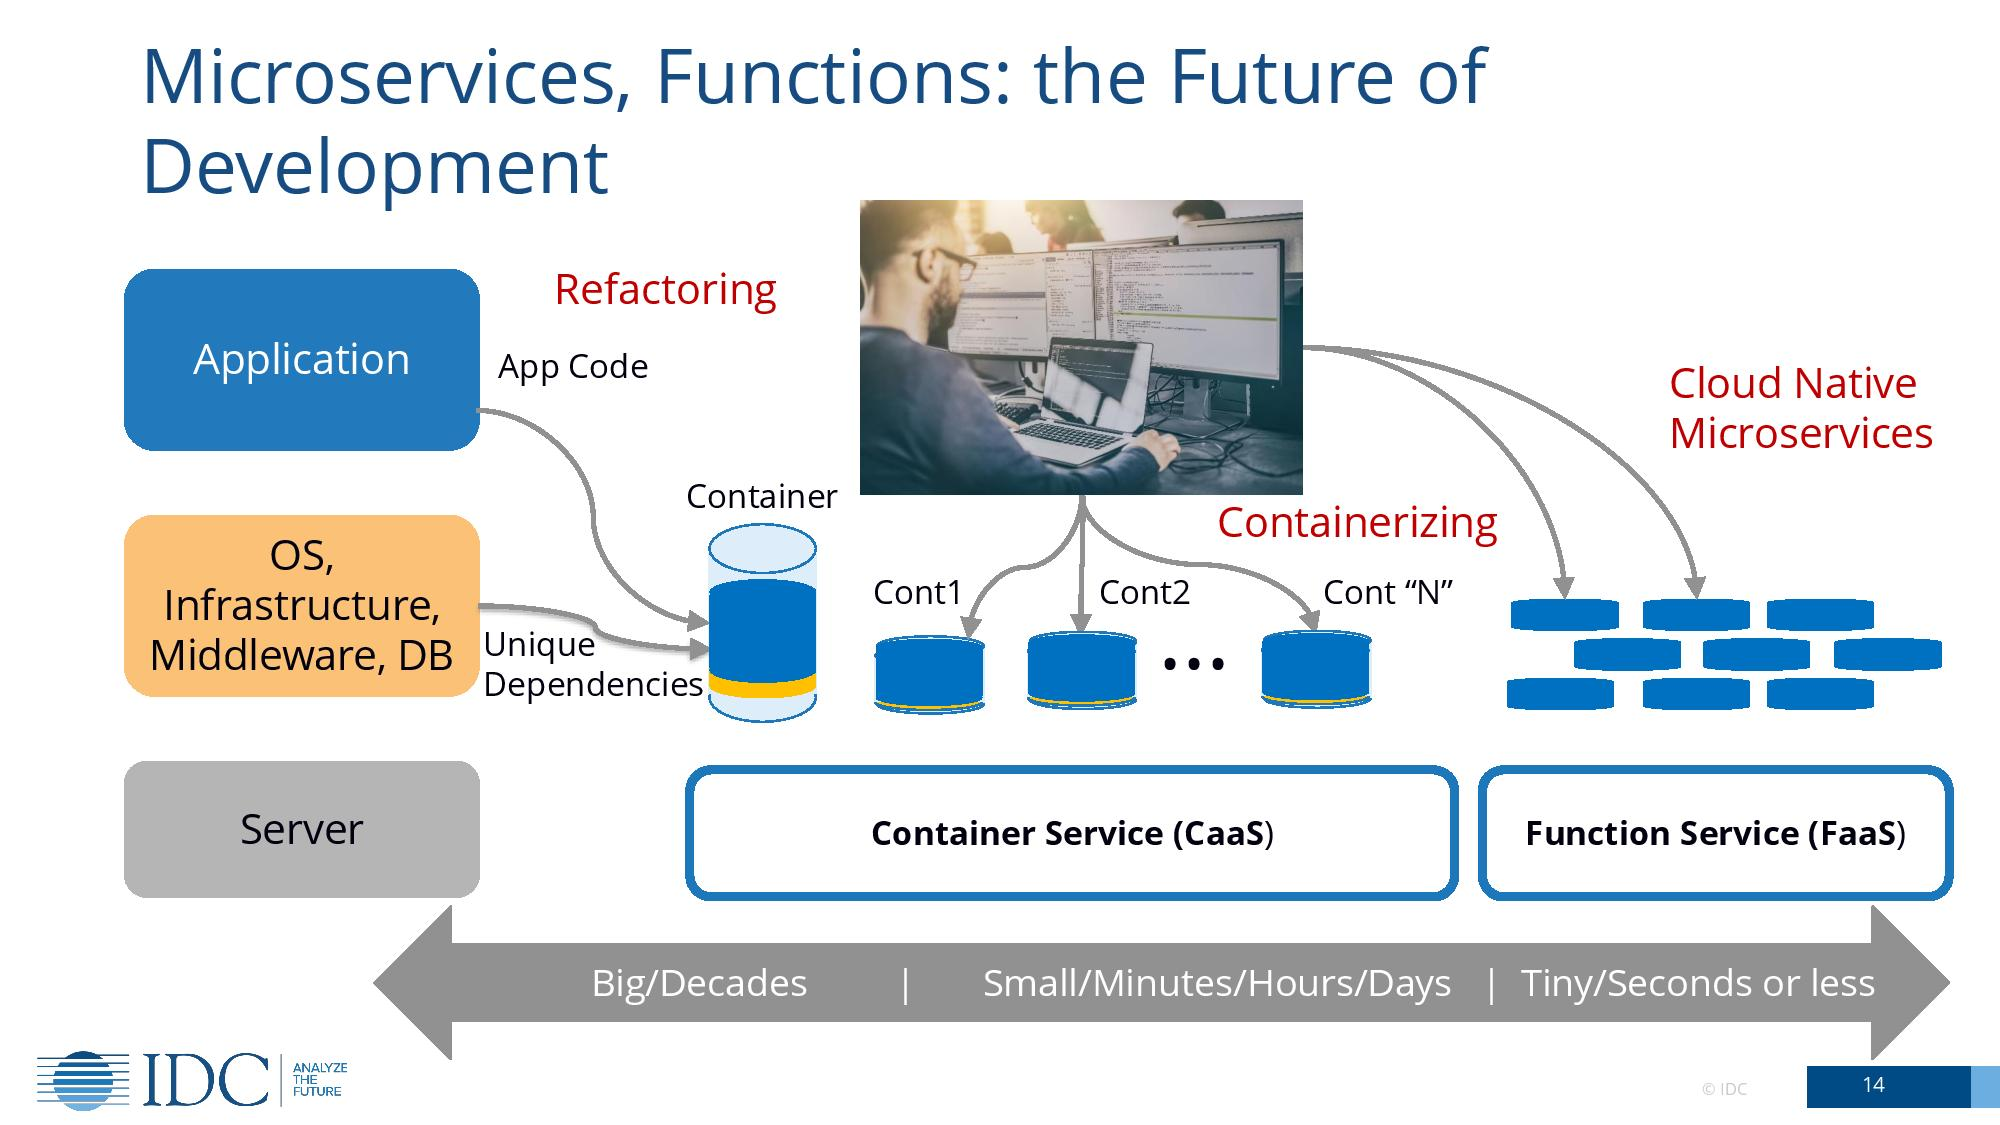 IDC: microservices, function